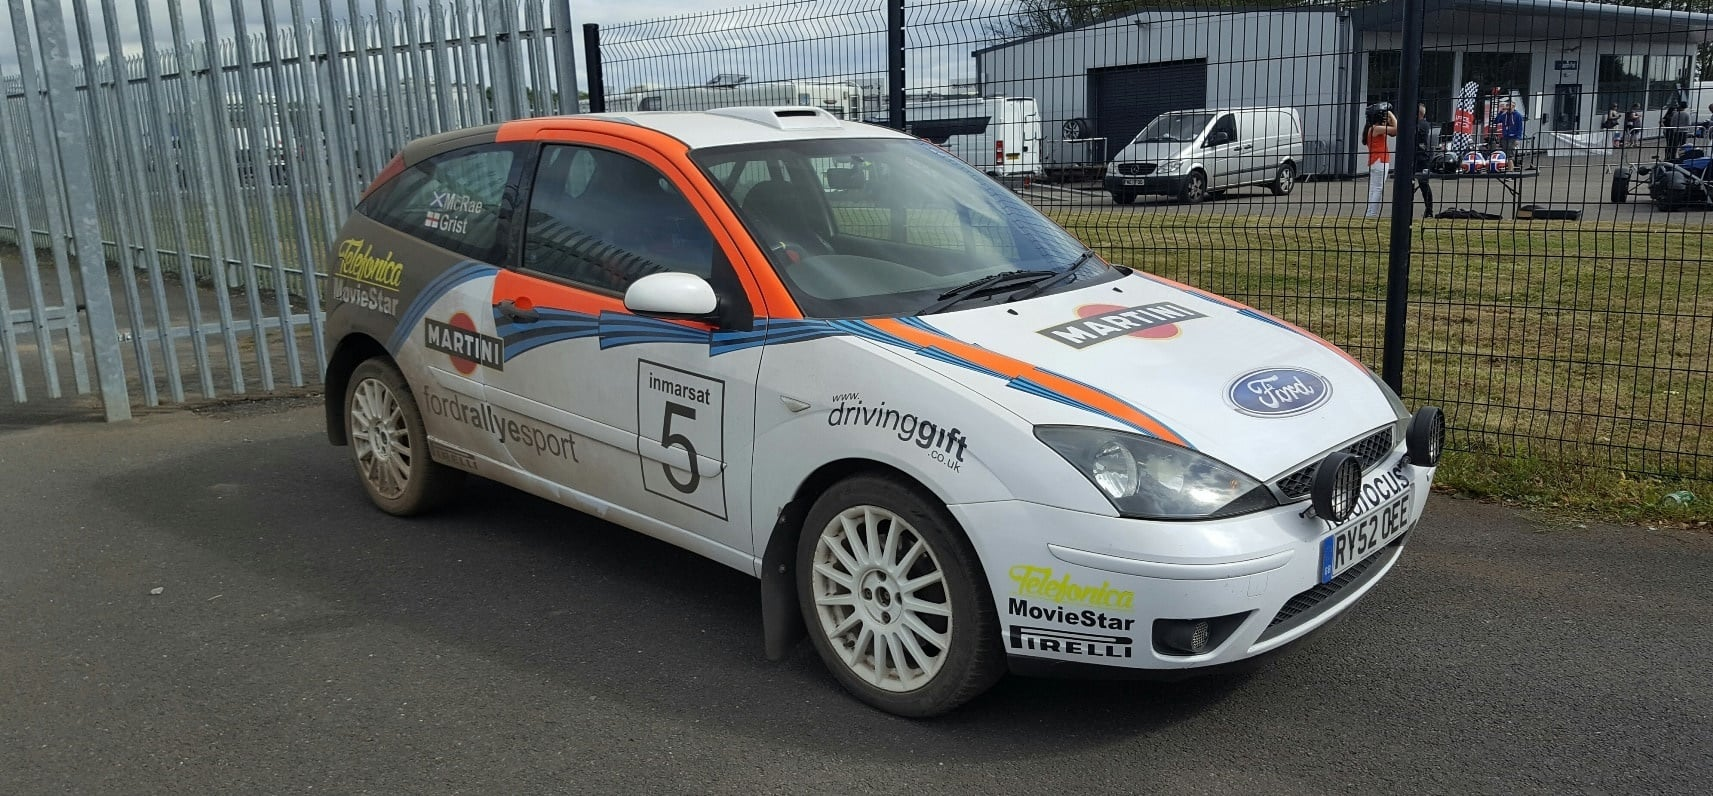 Leicestershire Rally And Supercar Driving Experience-5